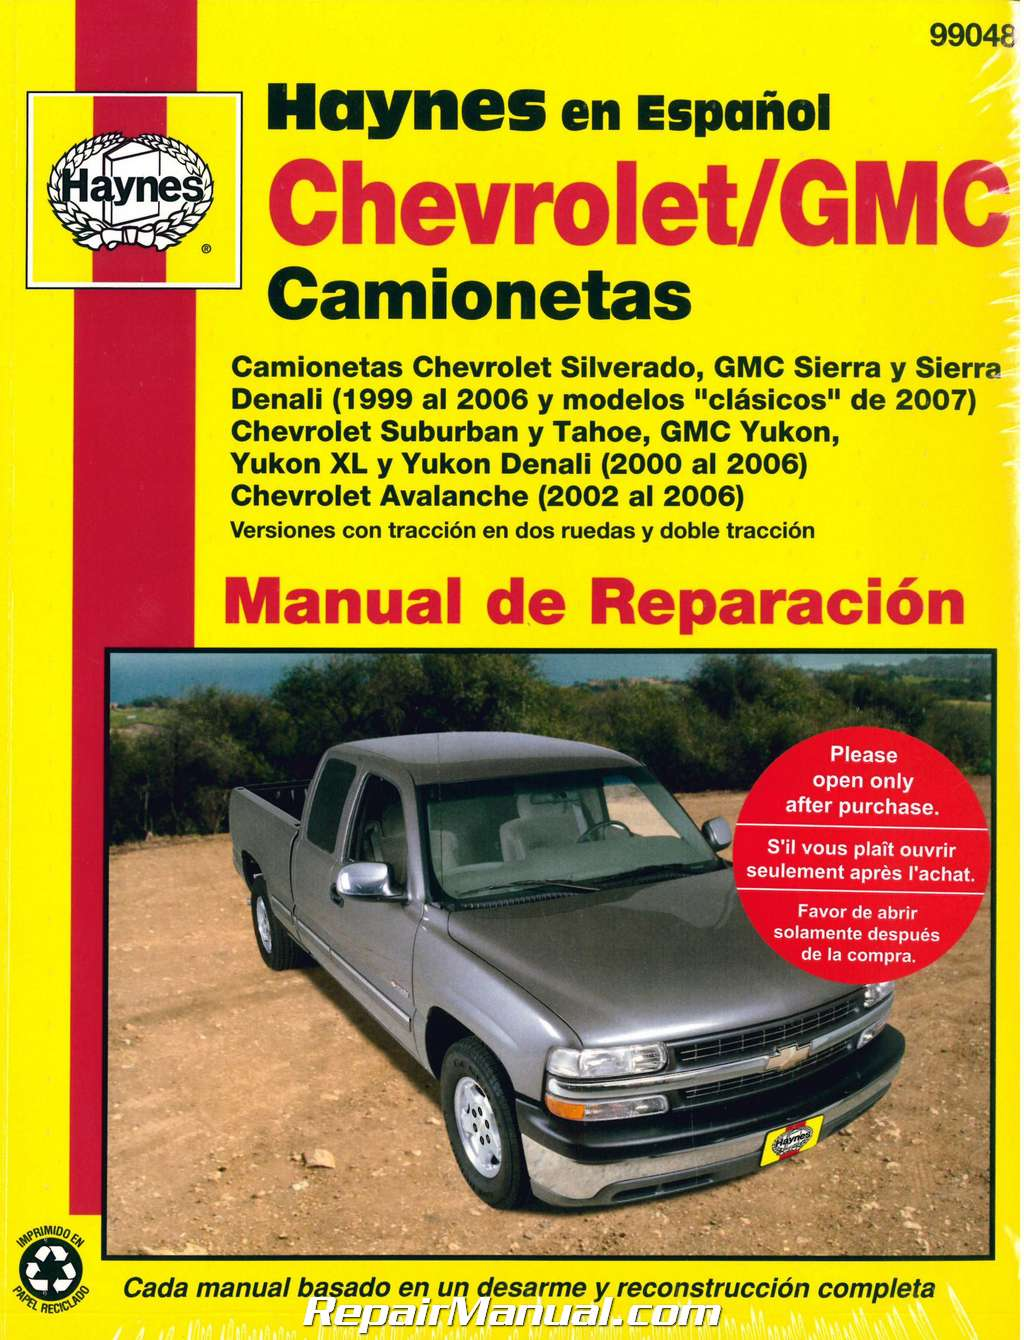 1999-2007 Chevrolet GMC Pick-ups SUVs Repair Manual Espanol Spanish Manual  de automotriz